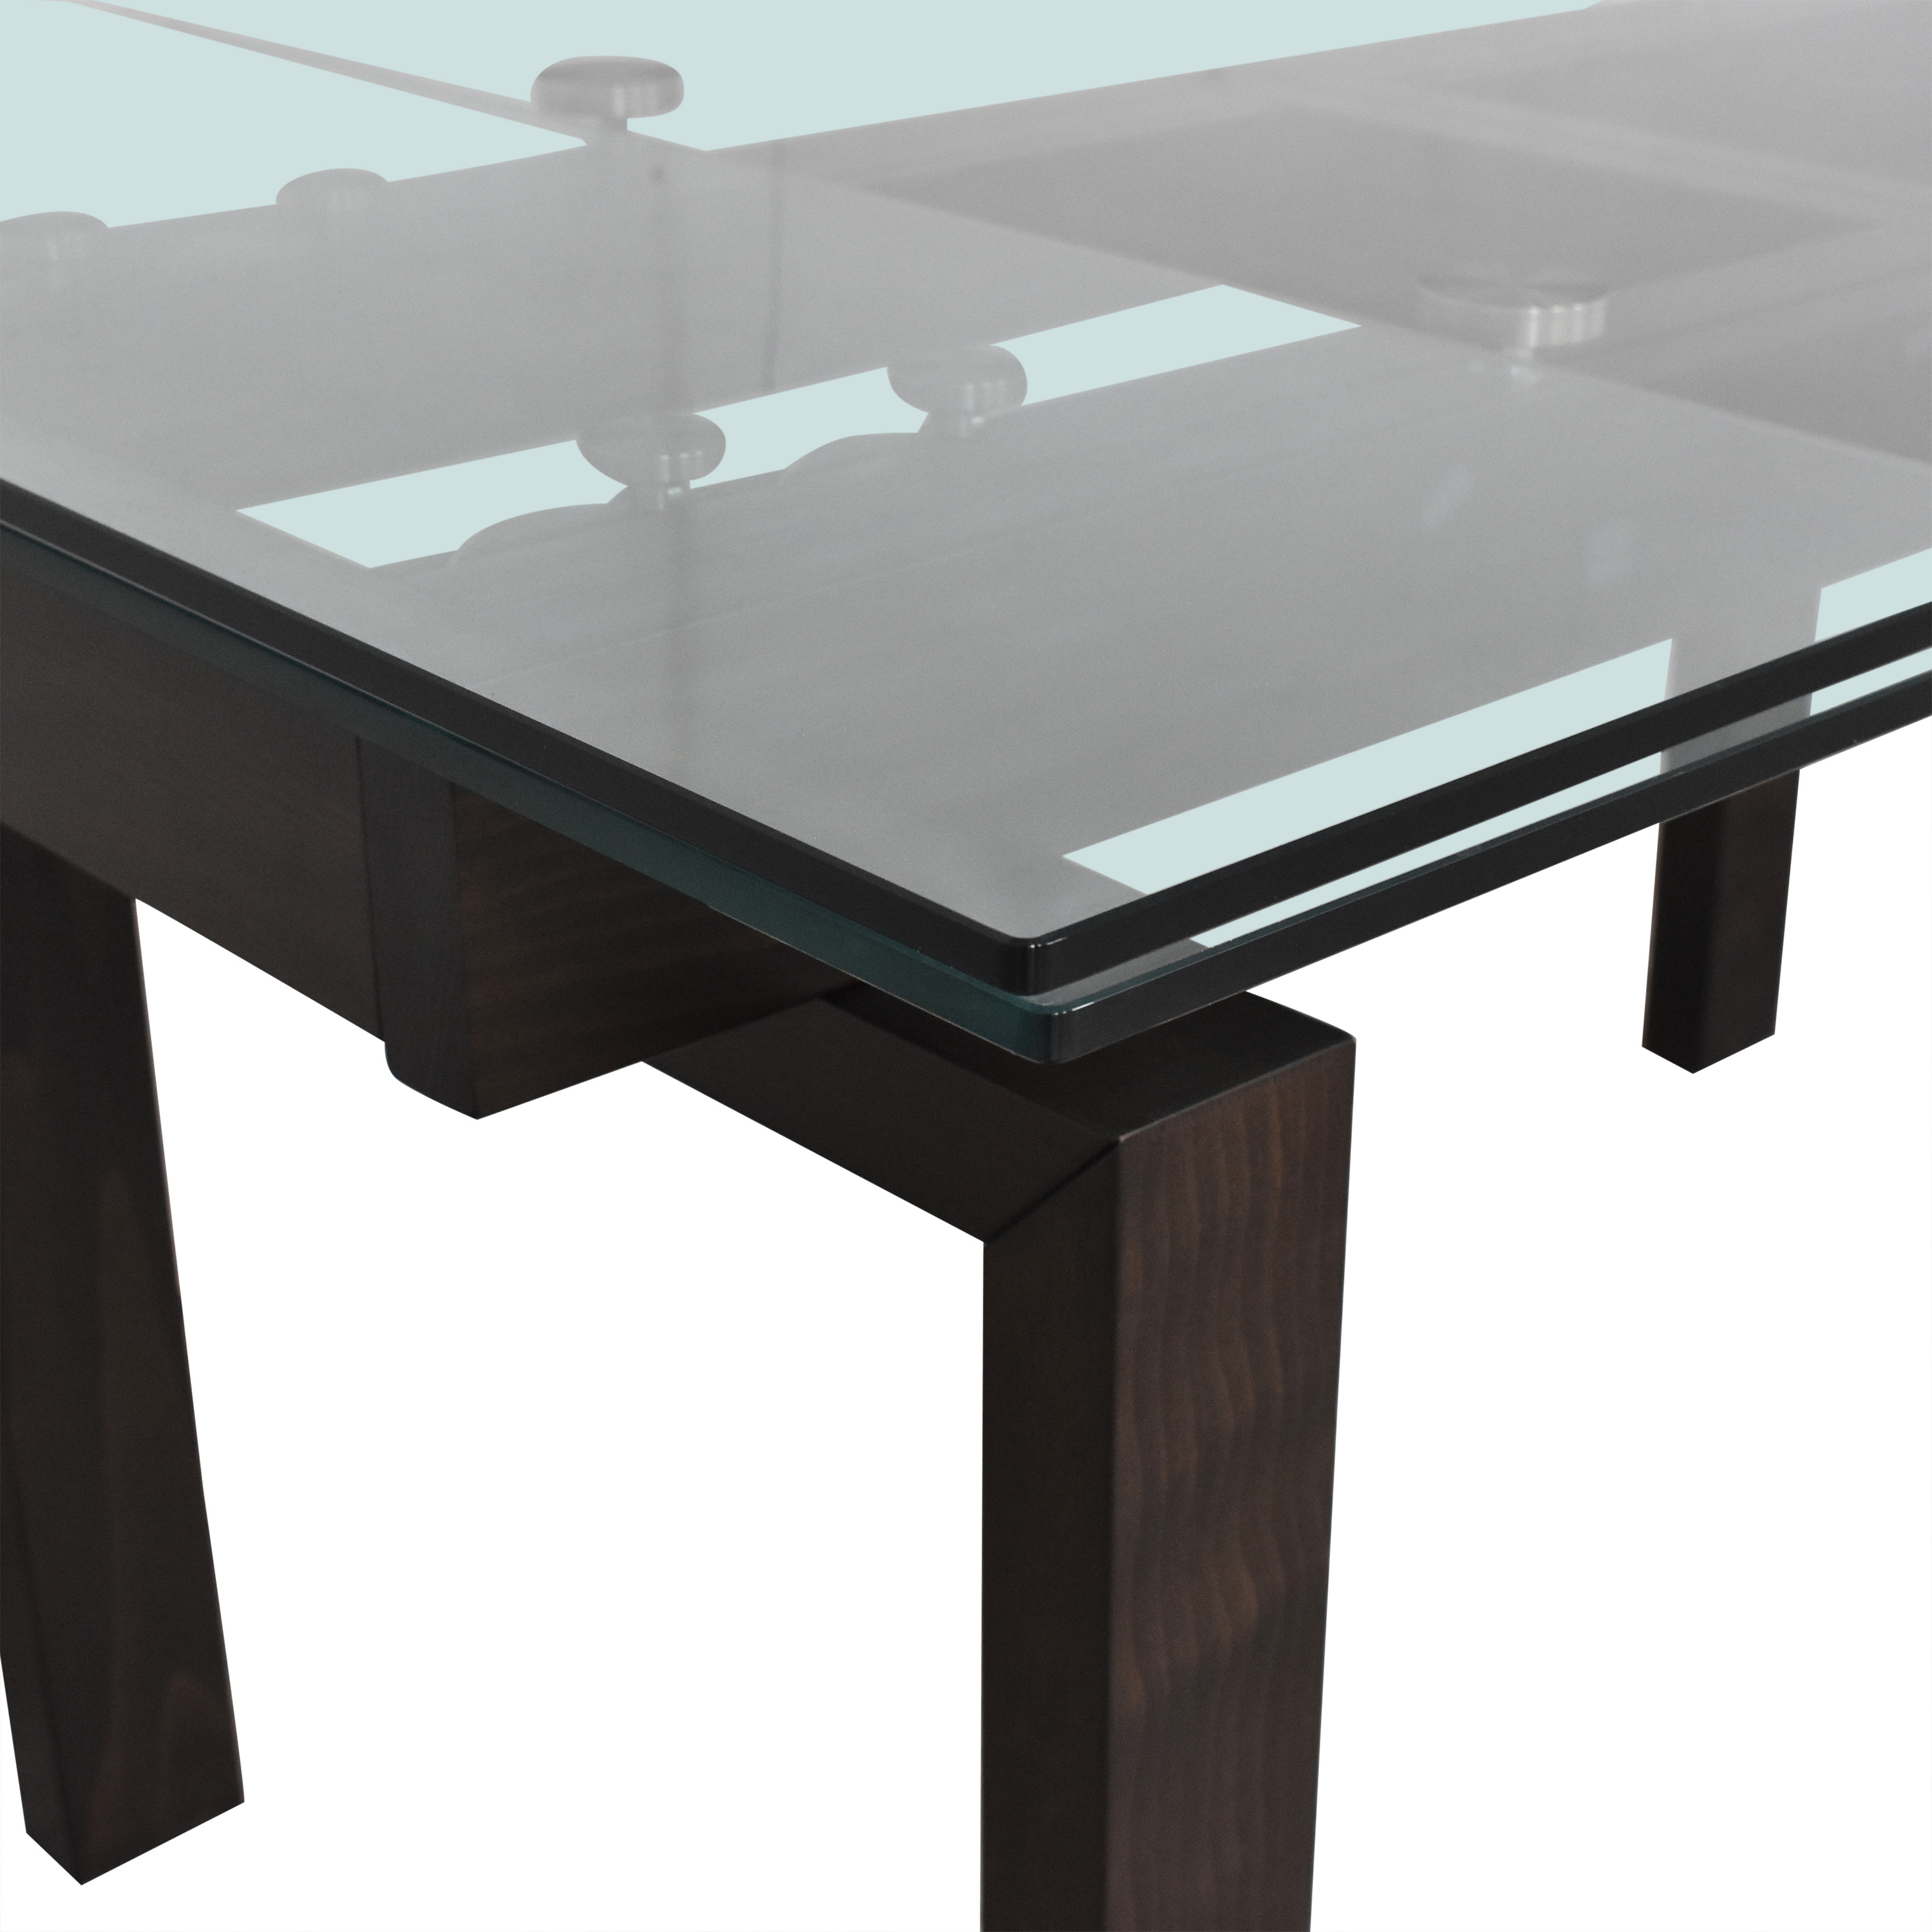 Calligaris Calligaris Hyper Extension Dining Table Tables